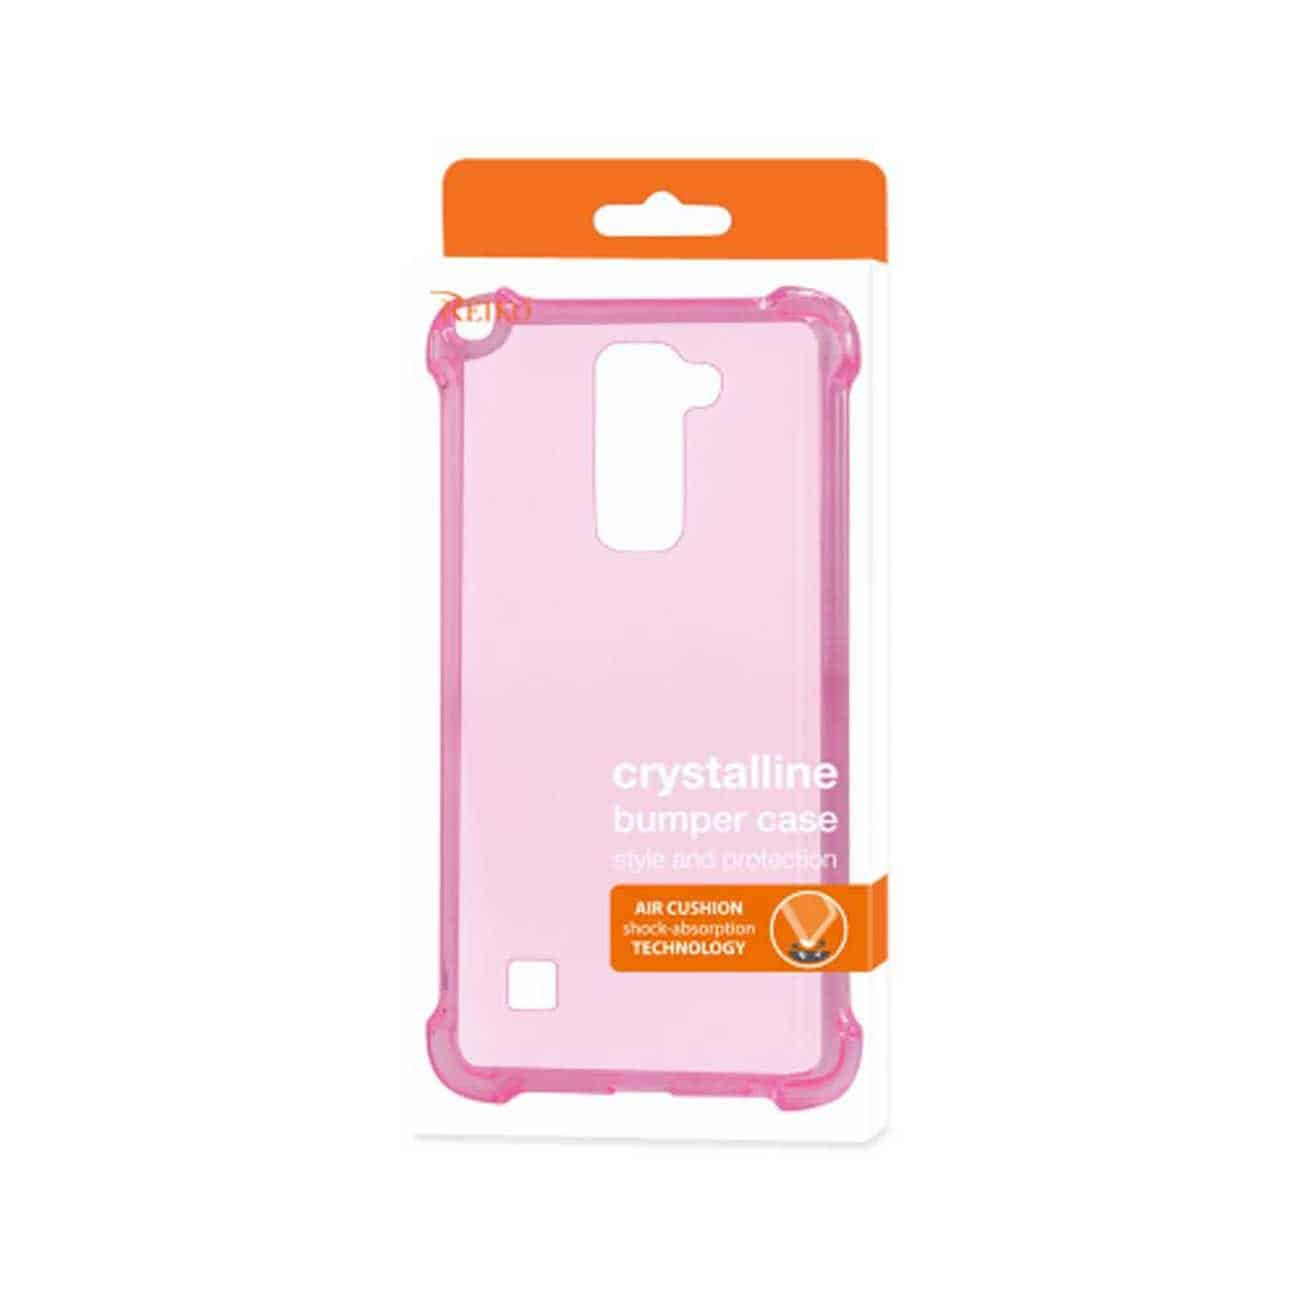 LG STYLUS 2 CLEAR BUMPER CASE WITH AIR CUSHION PROTECTION IN CLEAR HOT PINK